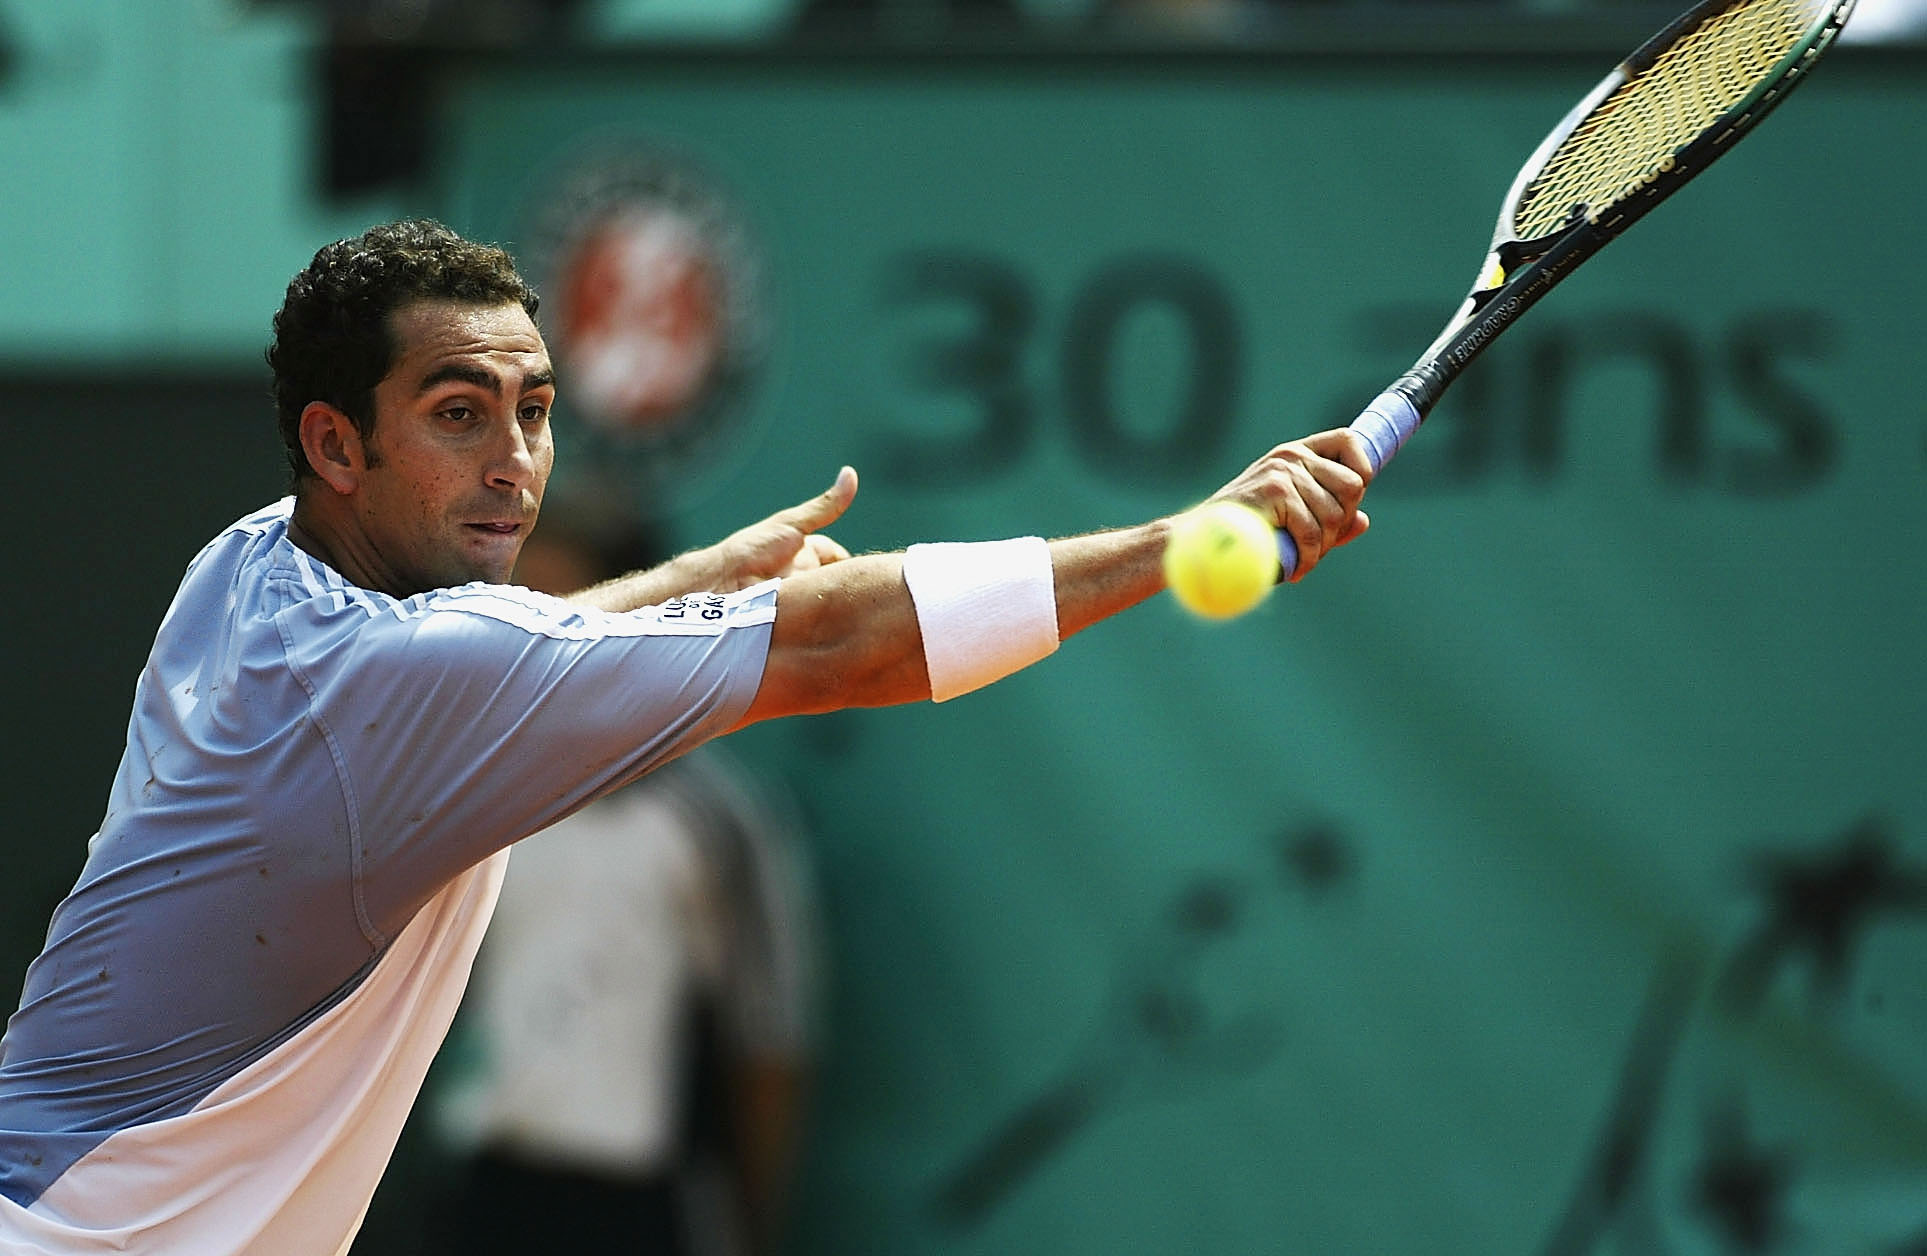 PARIS, FRANCE - JUNE 4:  Albert Costa of Spain returns in his quarter final match against Tommy Robredo of Spain during the tenth day of the French Open on June 4, 2003 at Roland Garros in Paris, France. (Photo by Clive Mason/Getty Images)